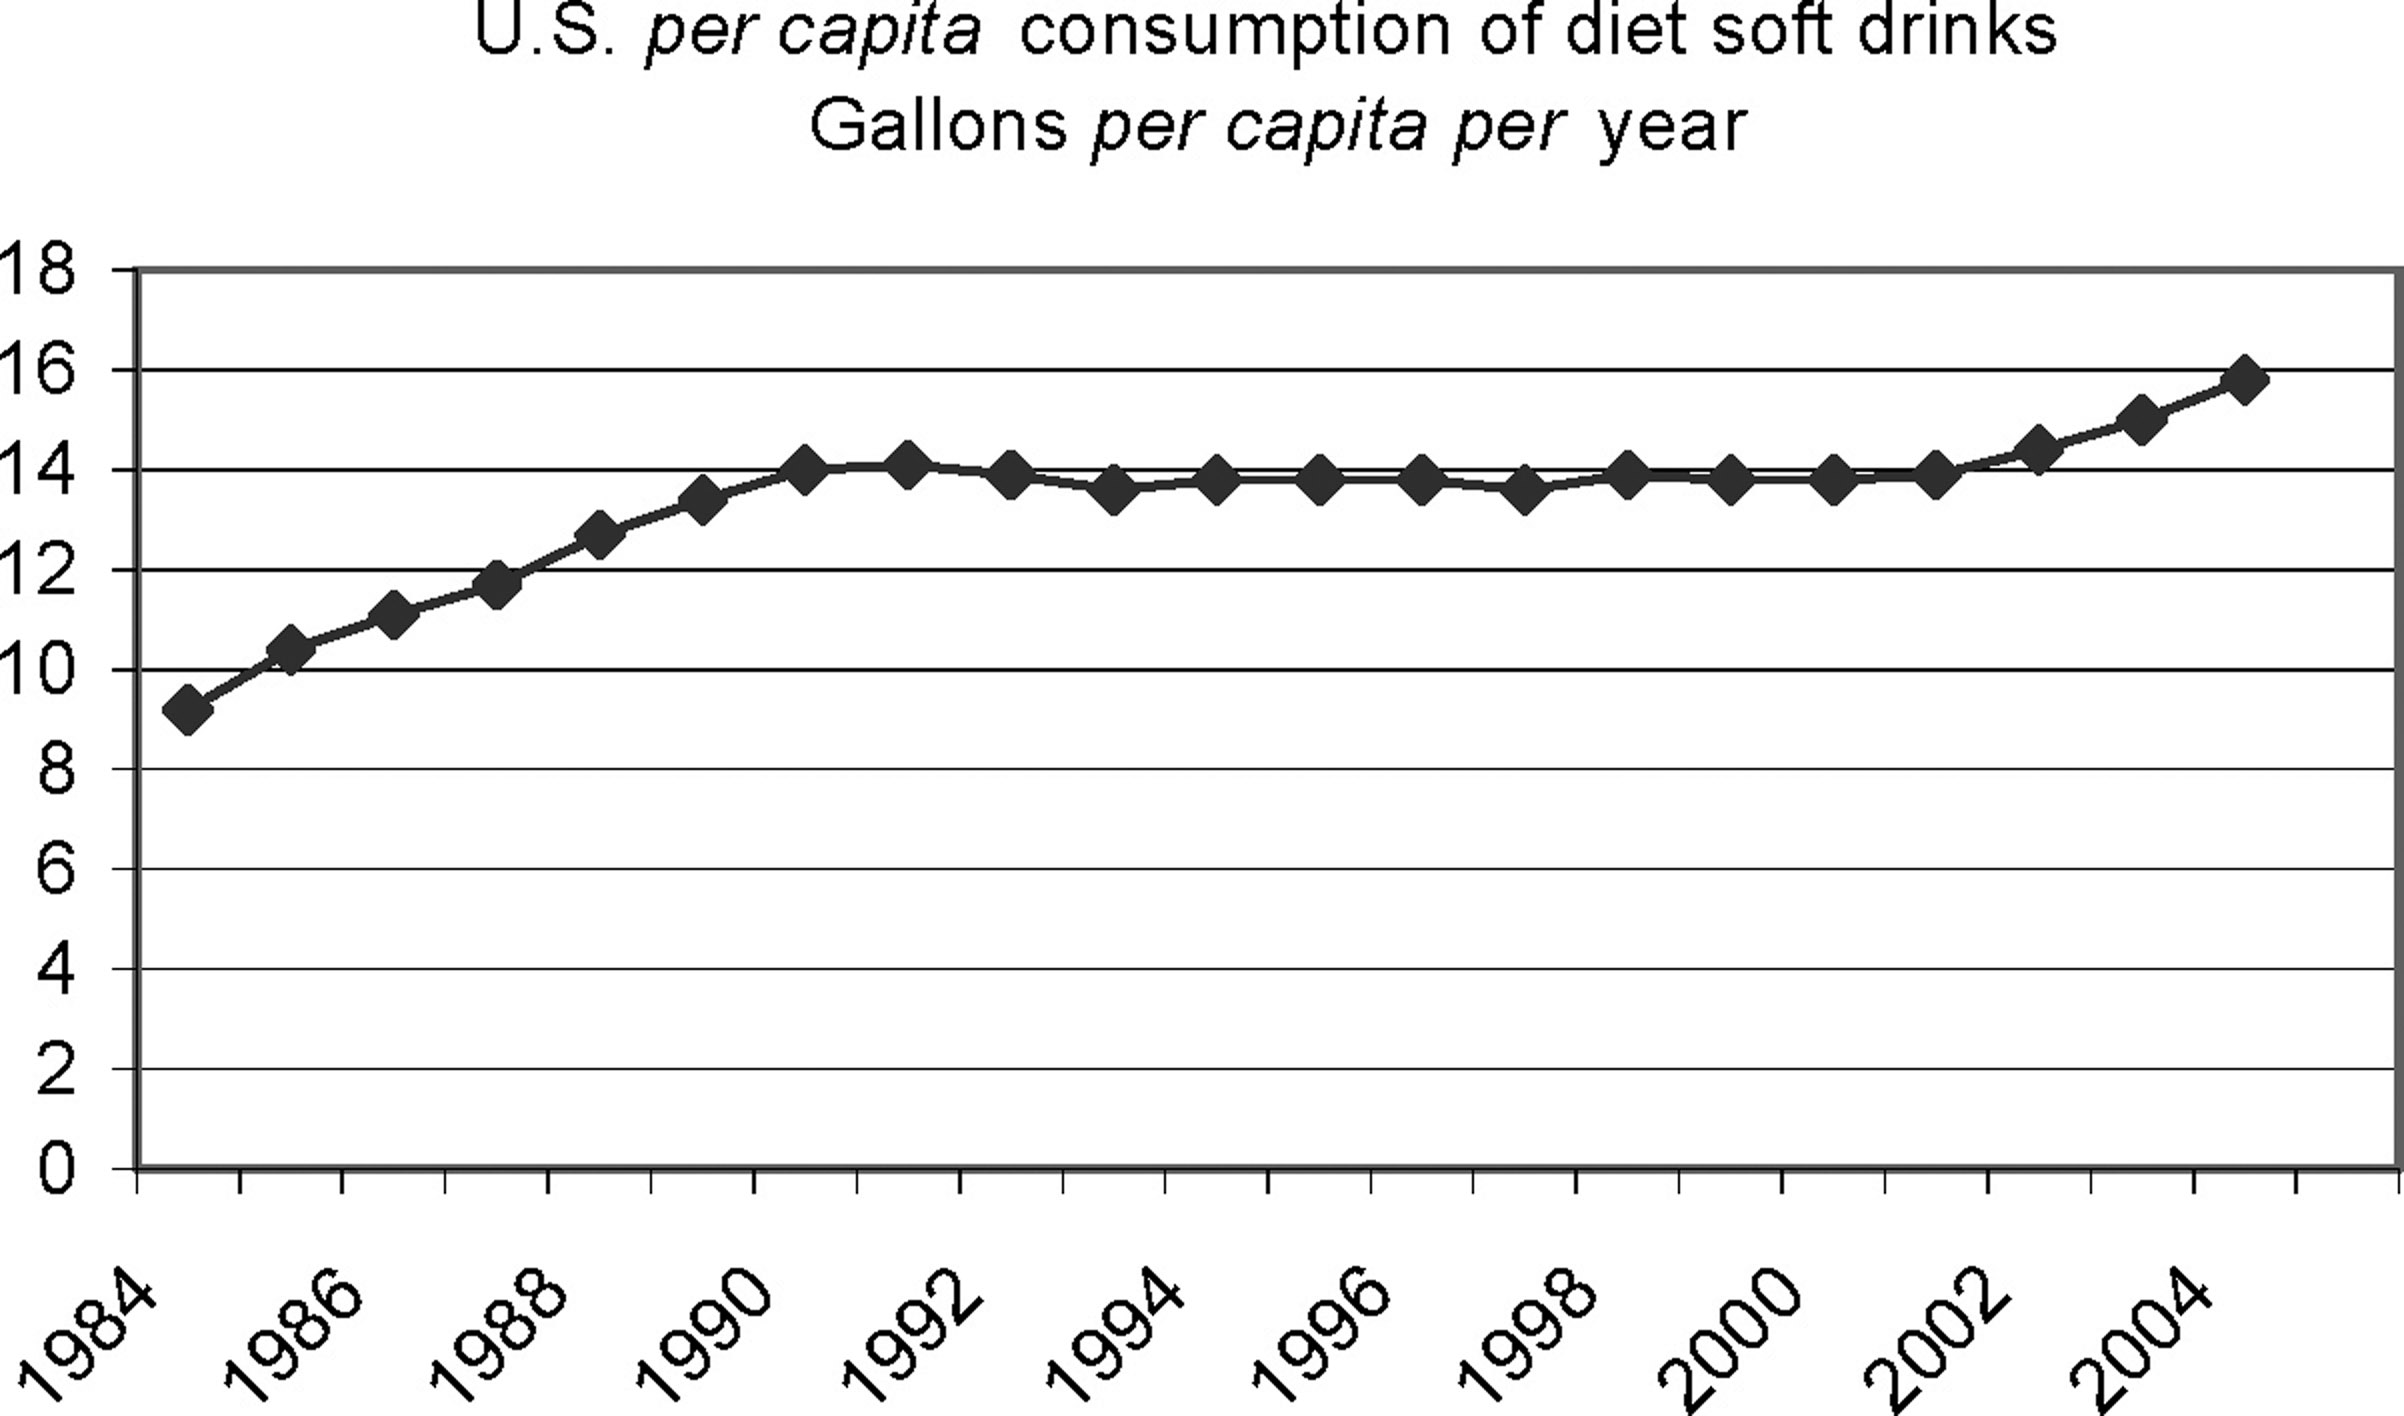 640 B. A. MAGNUSON ET AL. FIG. 4. U.S. per capita consumption of diet soft drinks (USDA Economic Research Service). 3.